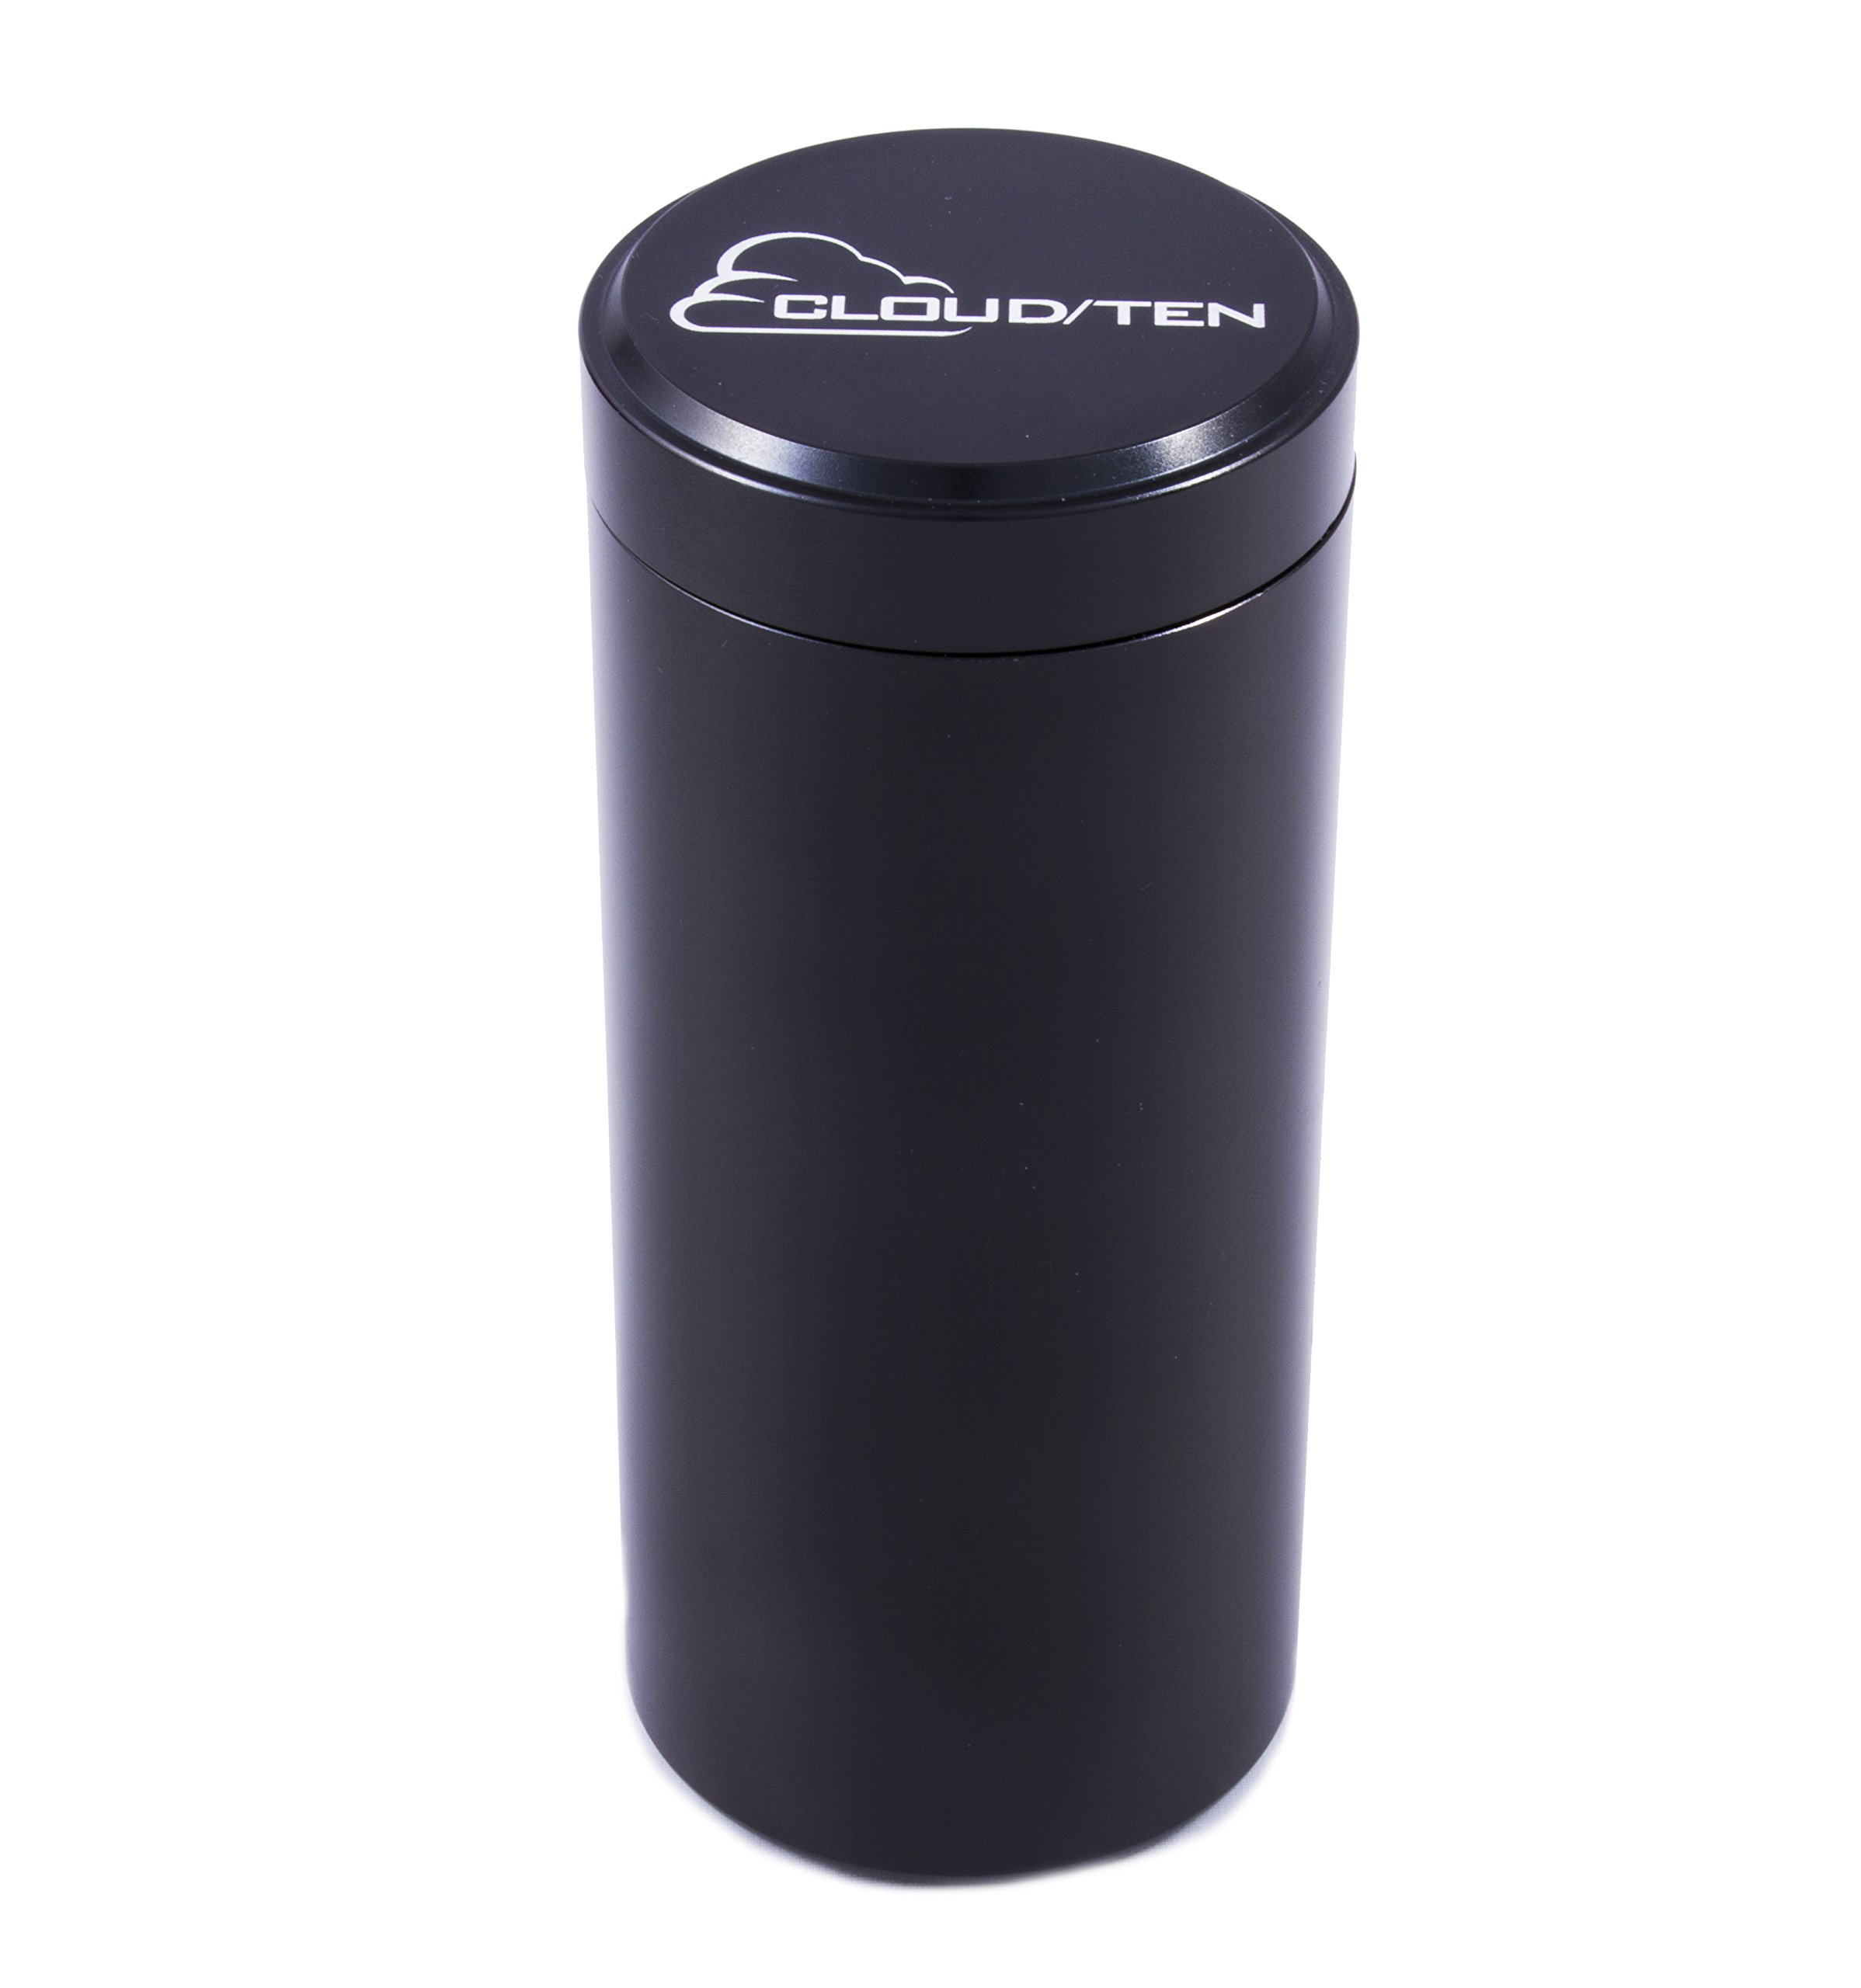 """Cloud/Ten 20G 5"""" Airtight Herb Stash Jar Container - Solid Aluminum Smell Proof Case Holds up to 20 Grams of Herb, Tobacco and Spices (1)"""